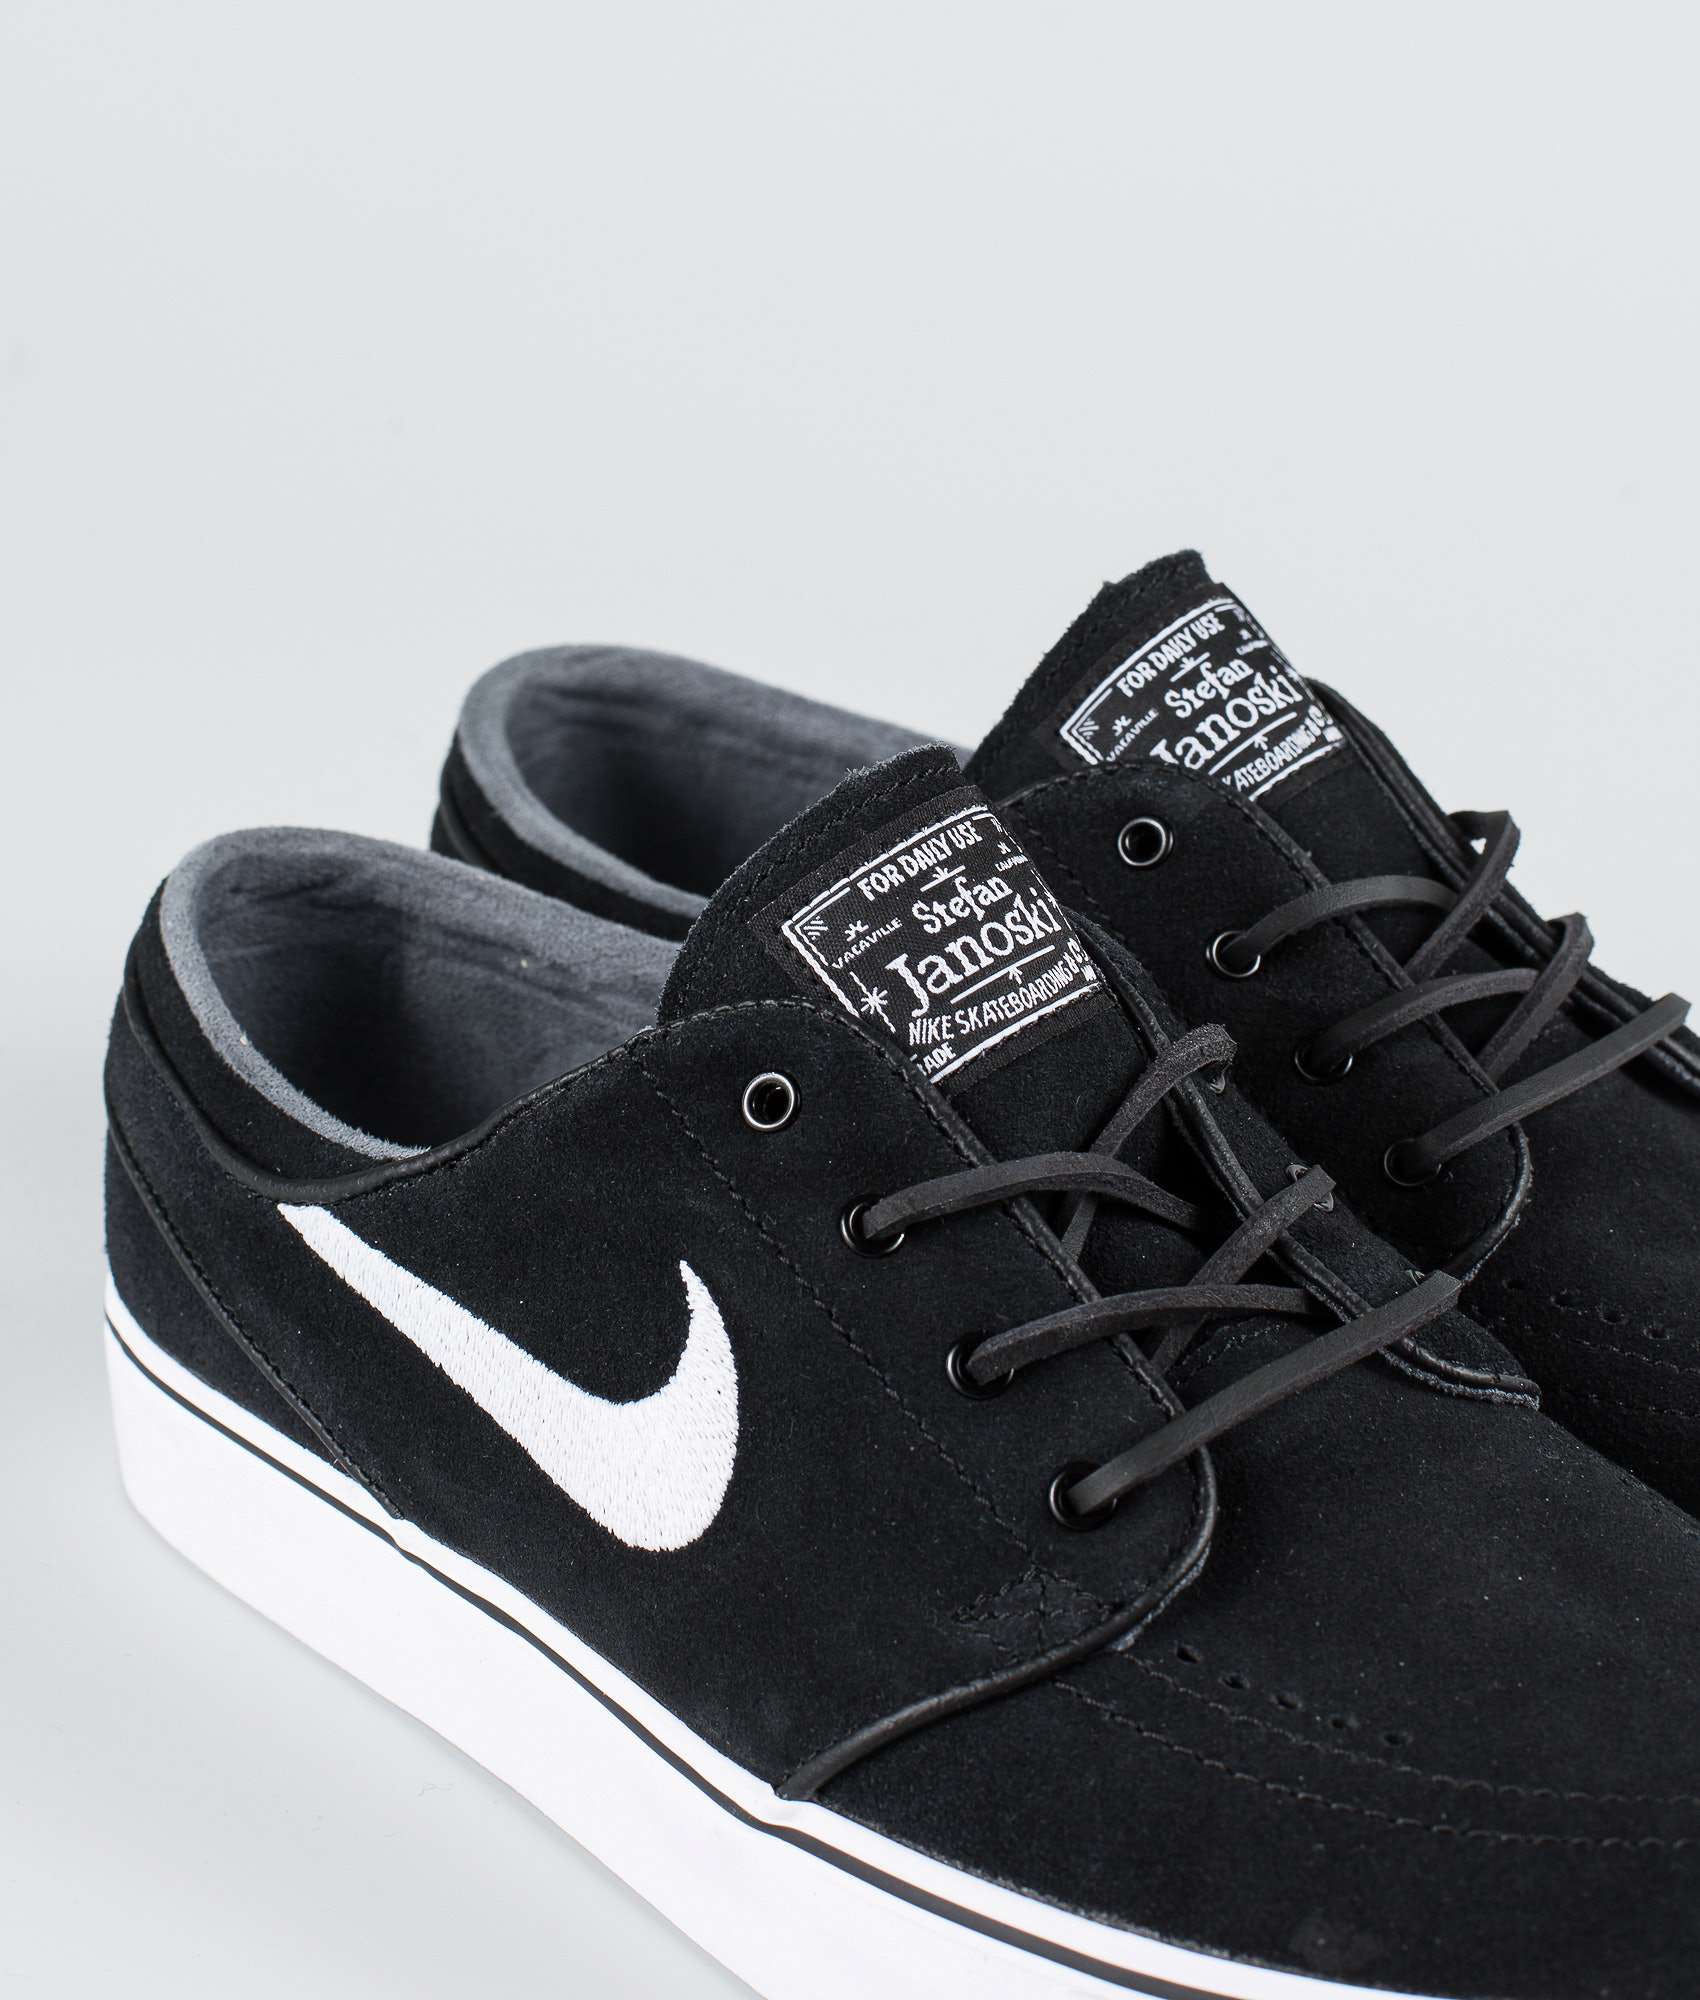 uk availability 88489 bdf96 Nike Zoom Stefan Janoski Og Skor